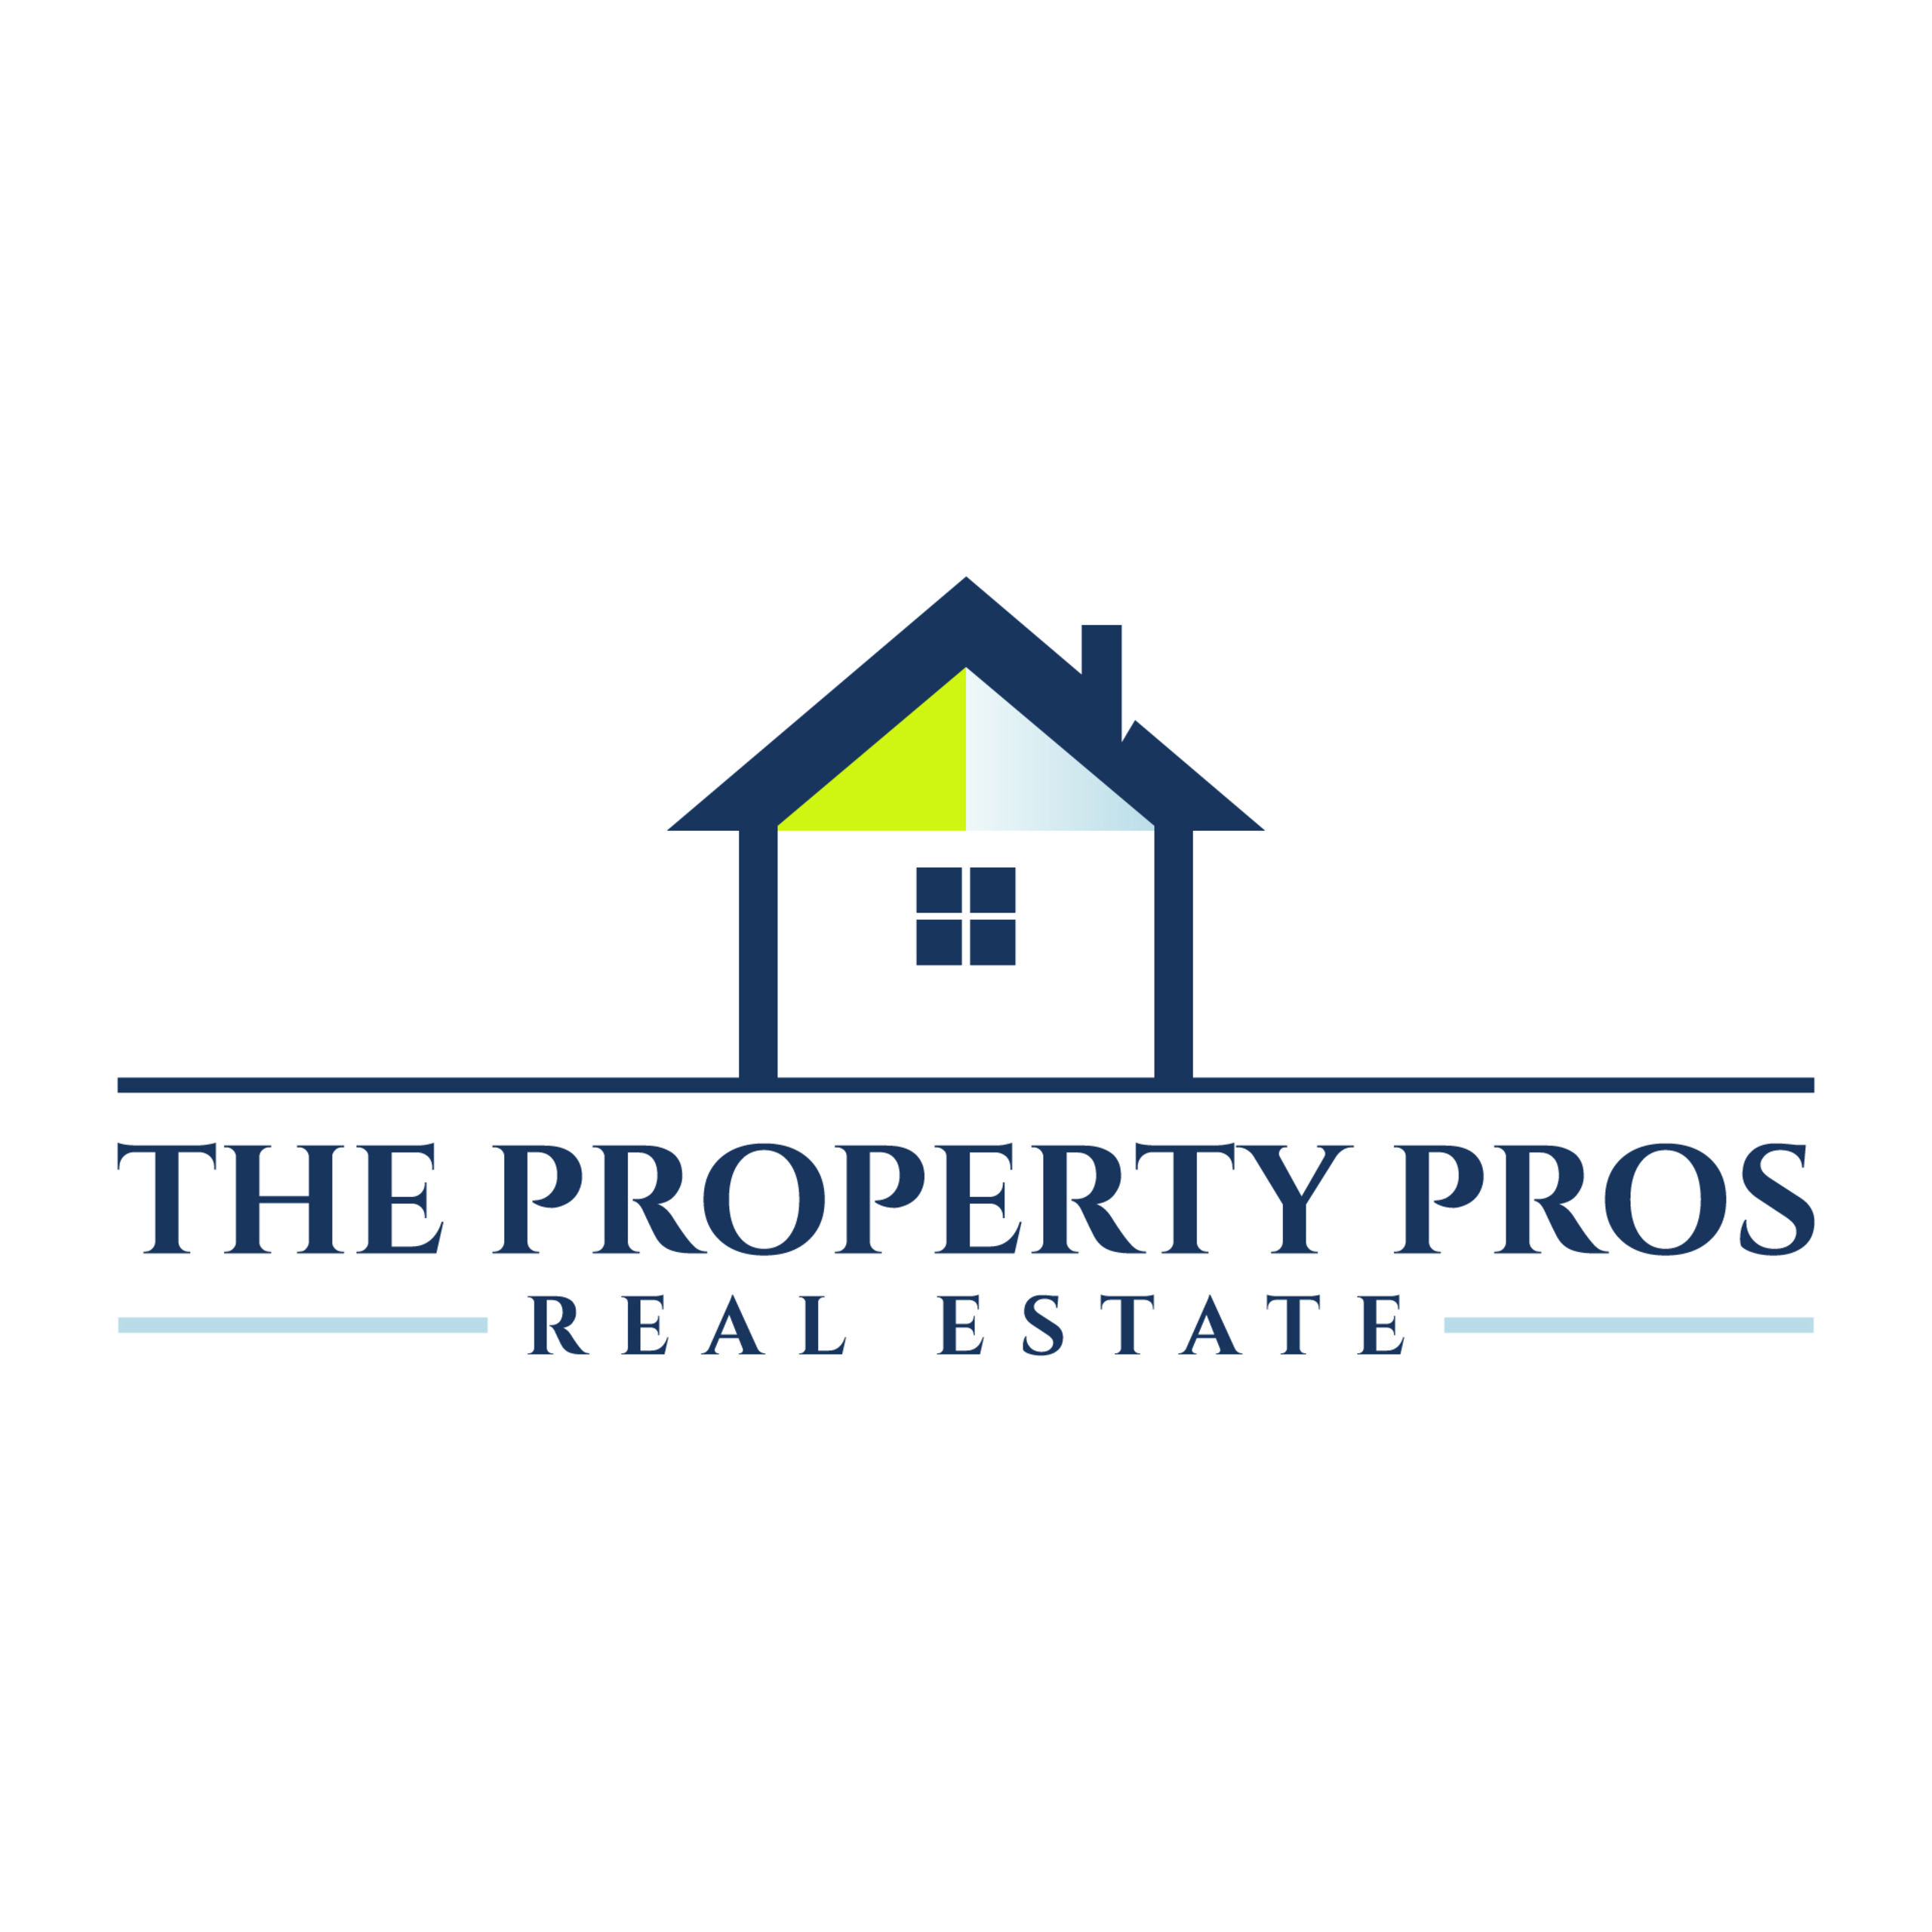 The Property Pros Real Estate - About Us